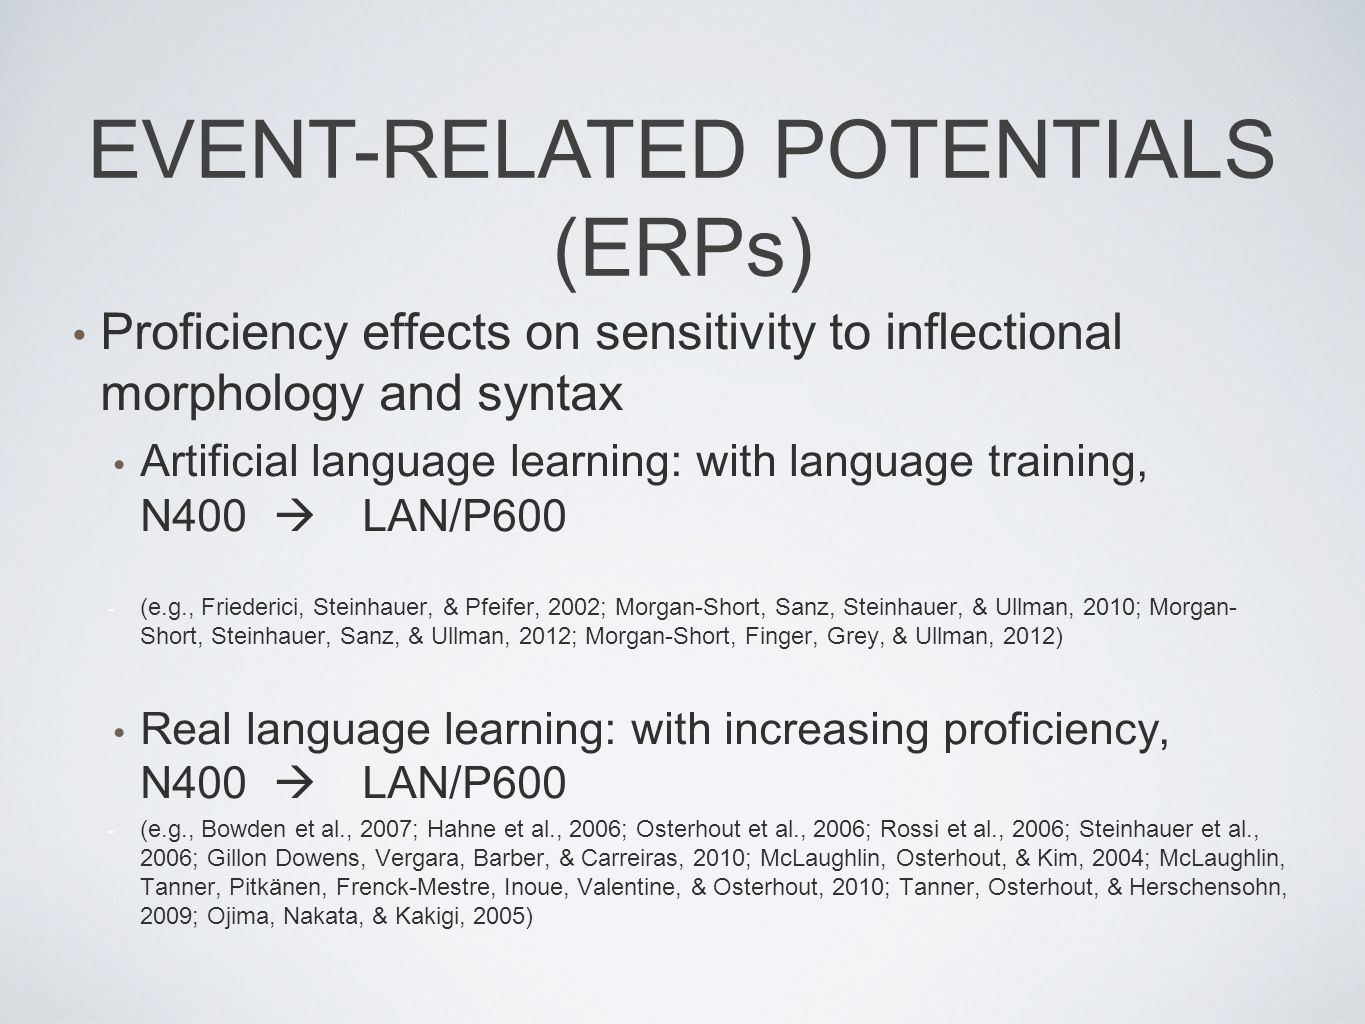 Proficiency effects on sensitivity to inflectional morphology and syntax Artificial language learning: with language training, N400  LAN/P600 - (e.g